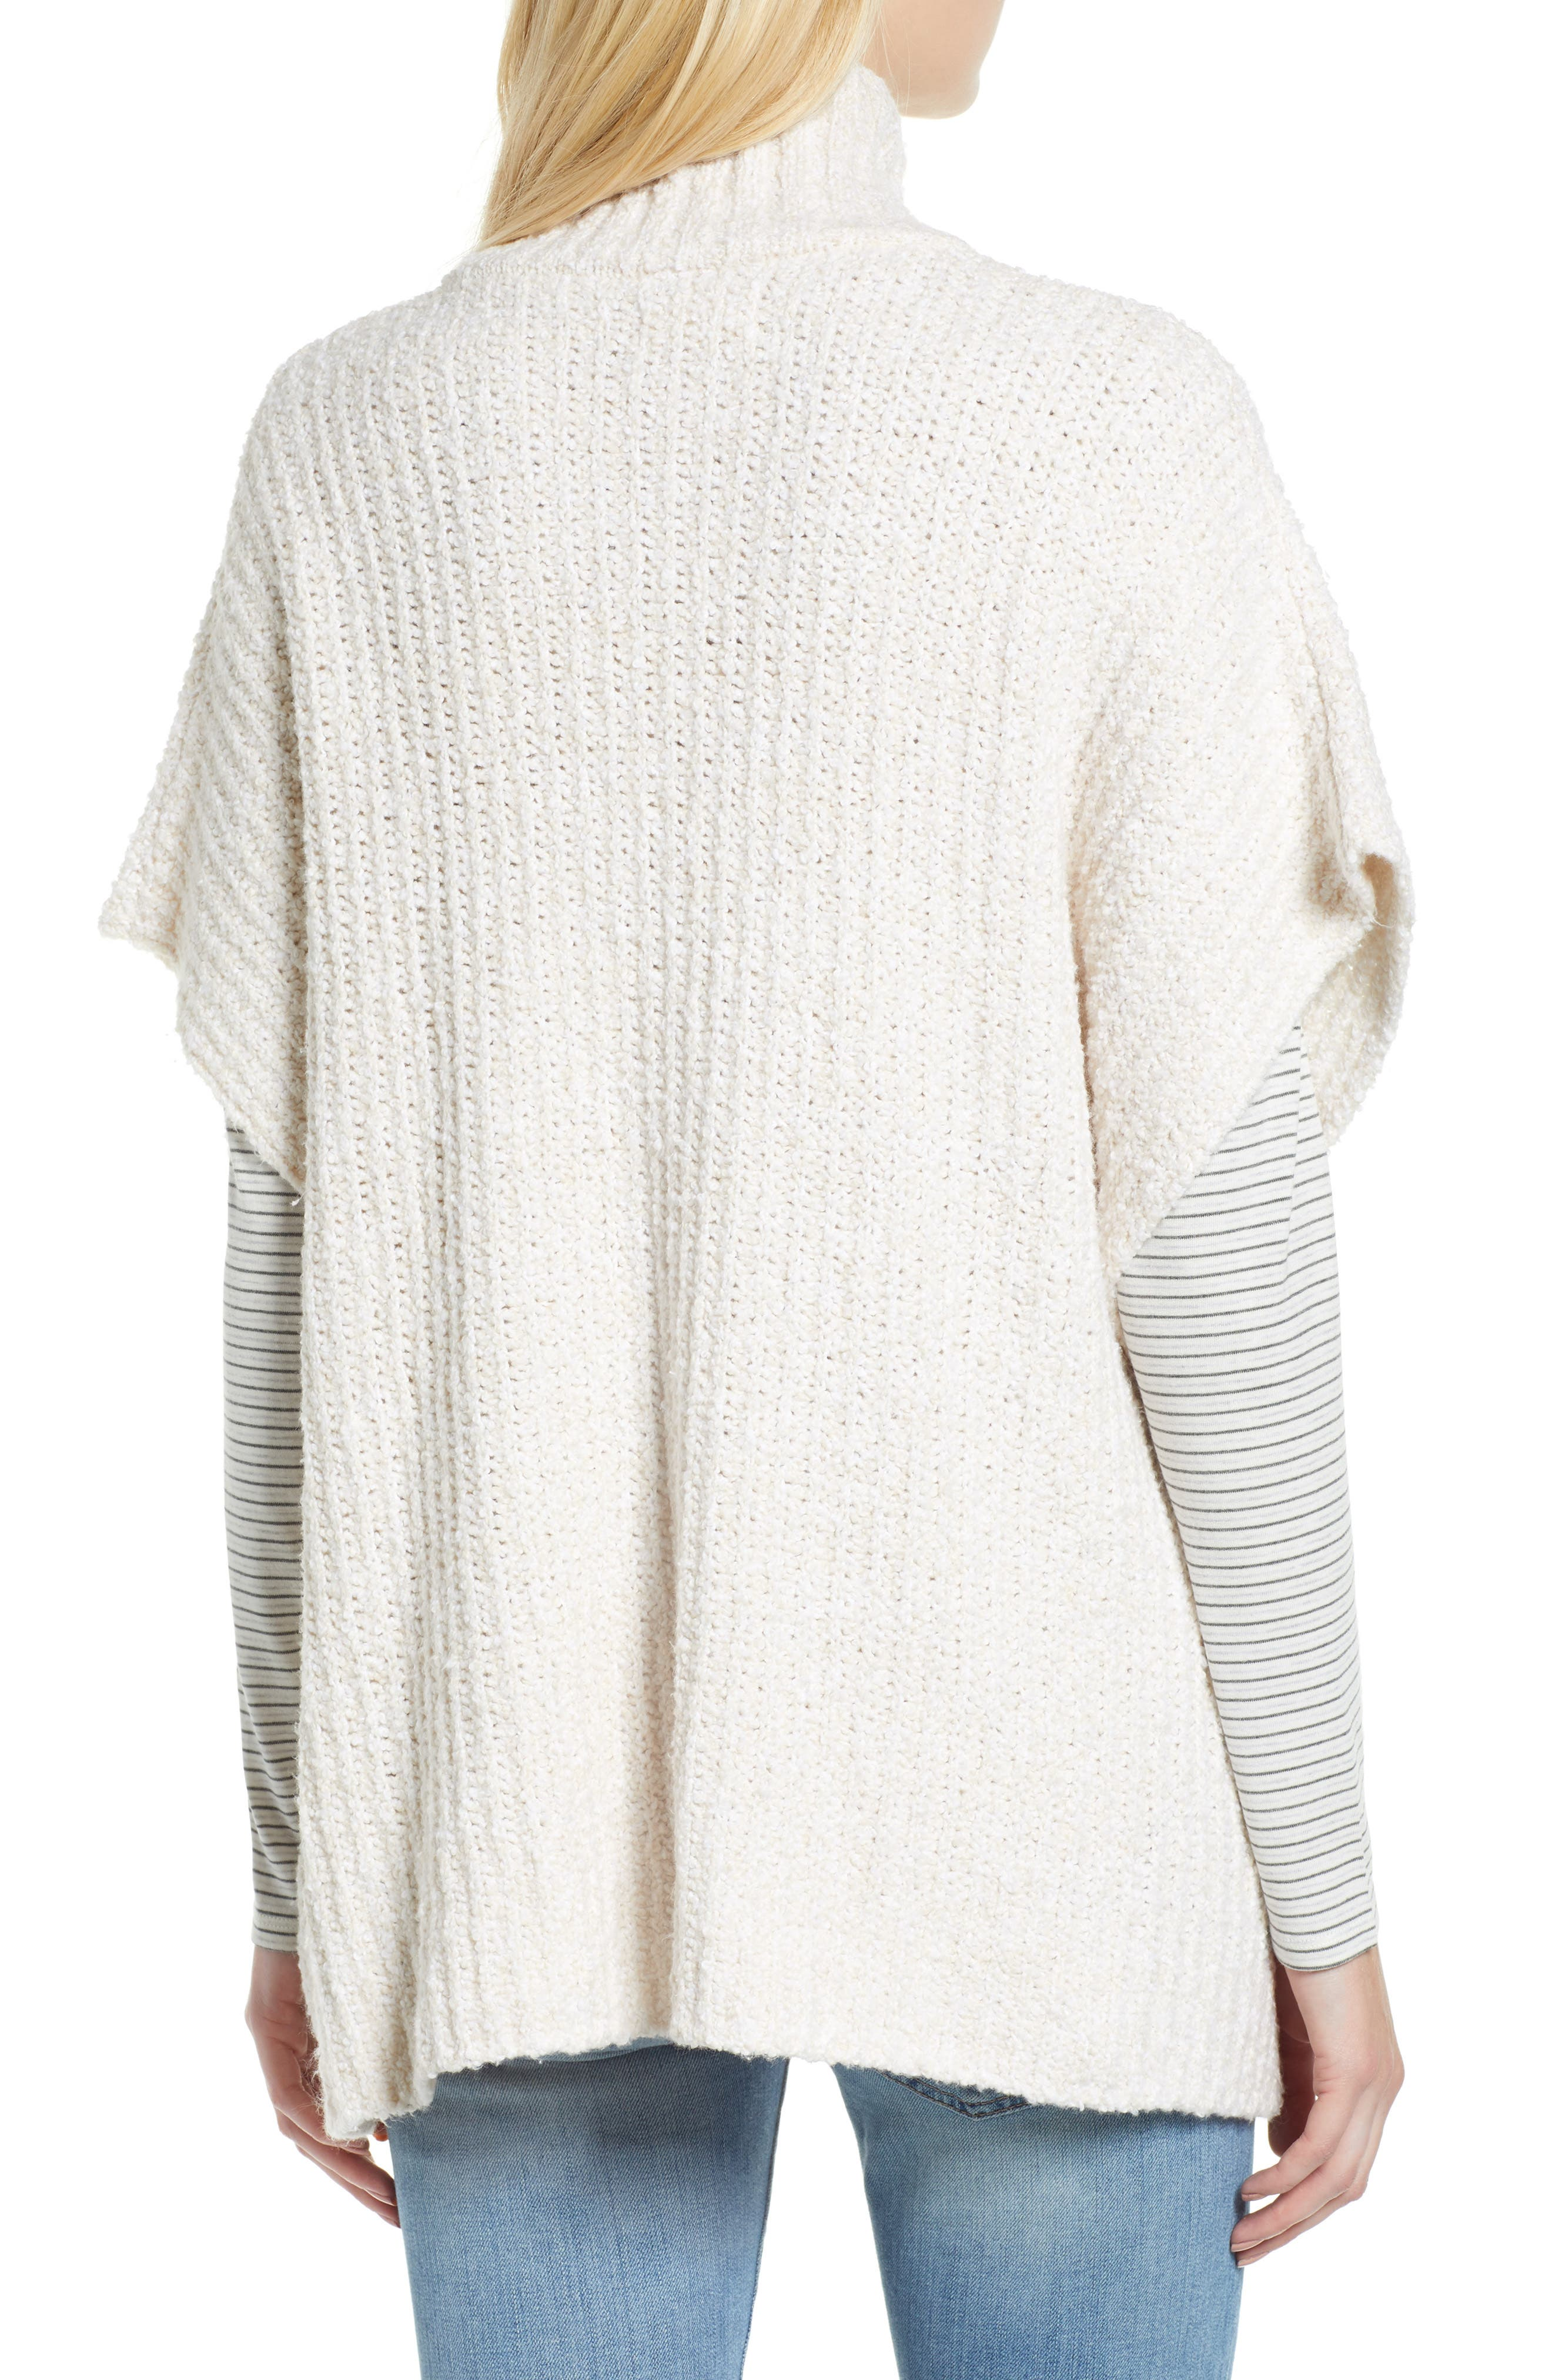 Ribbed Poncho Sweater,                             Alternate thumbnail 3, color,                             IVORY